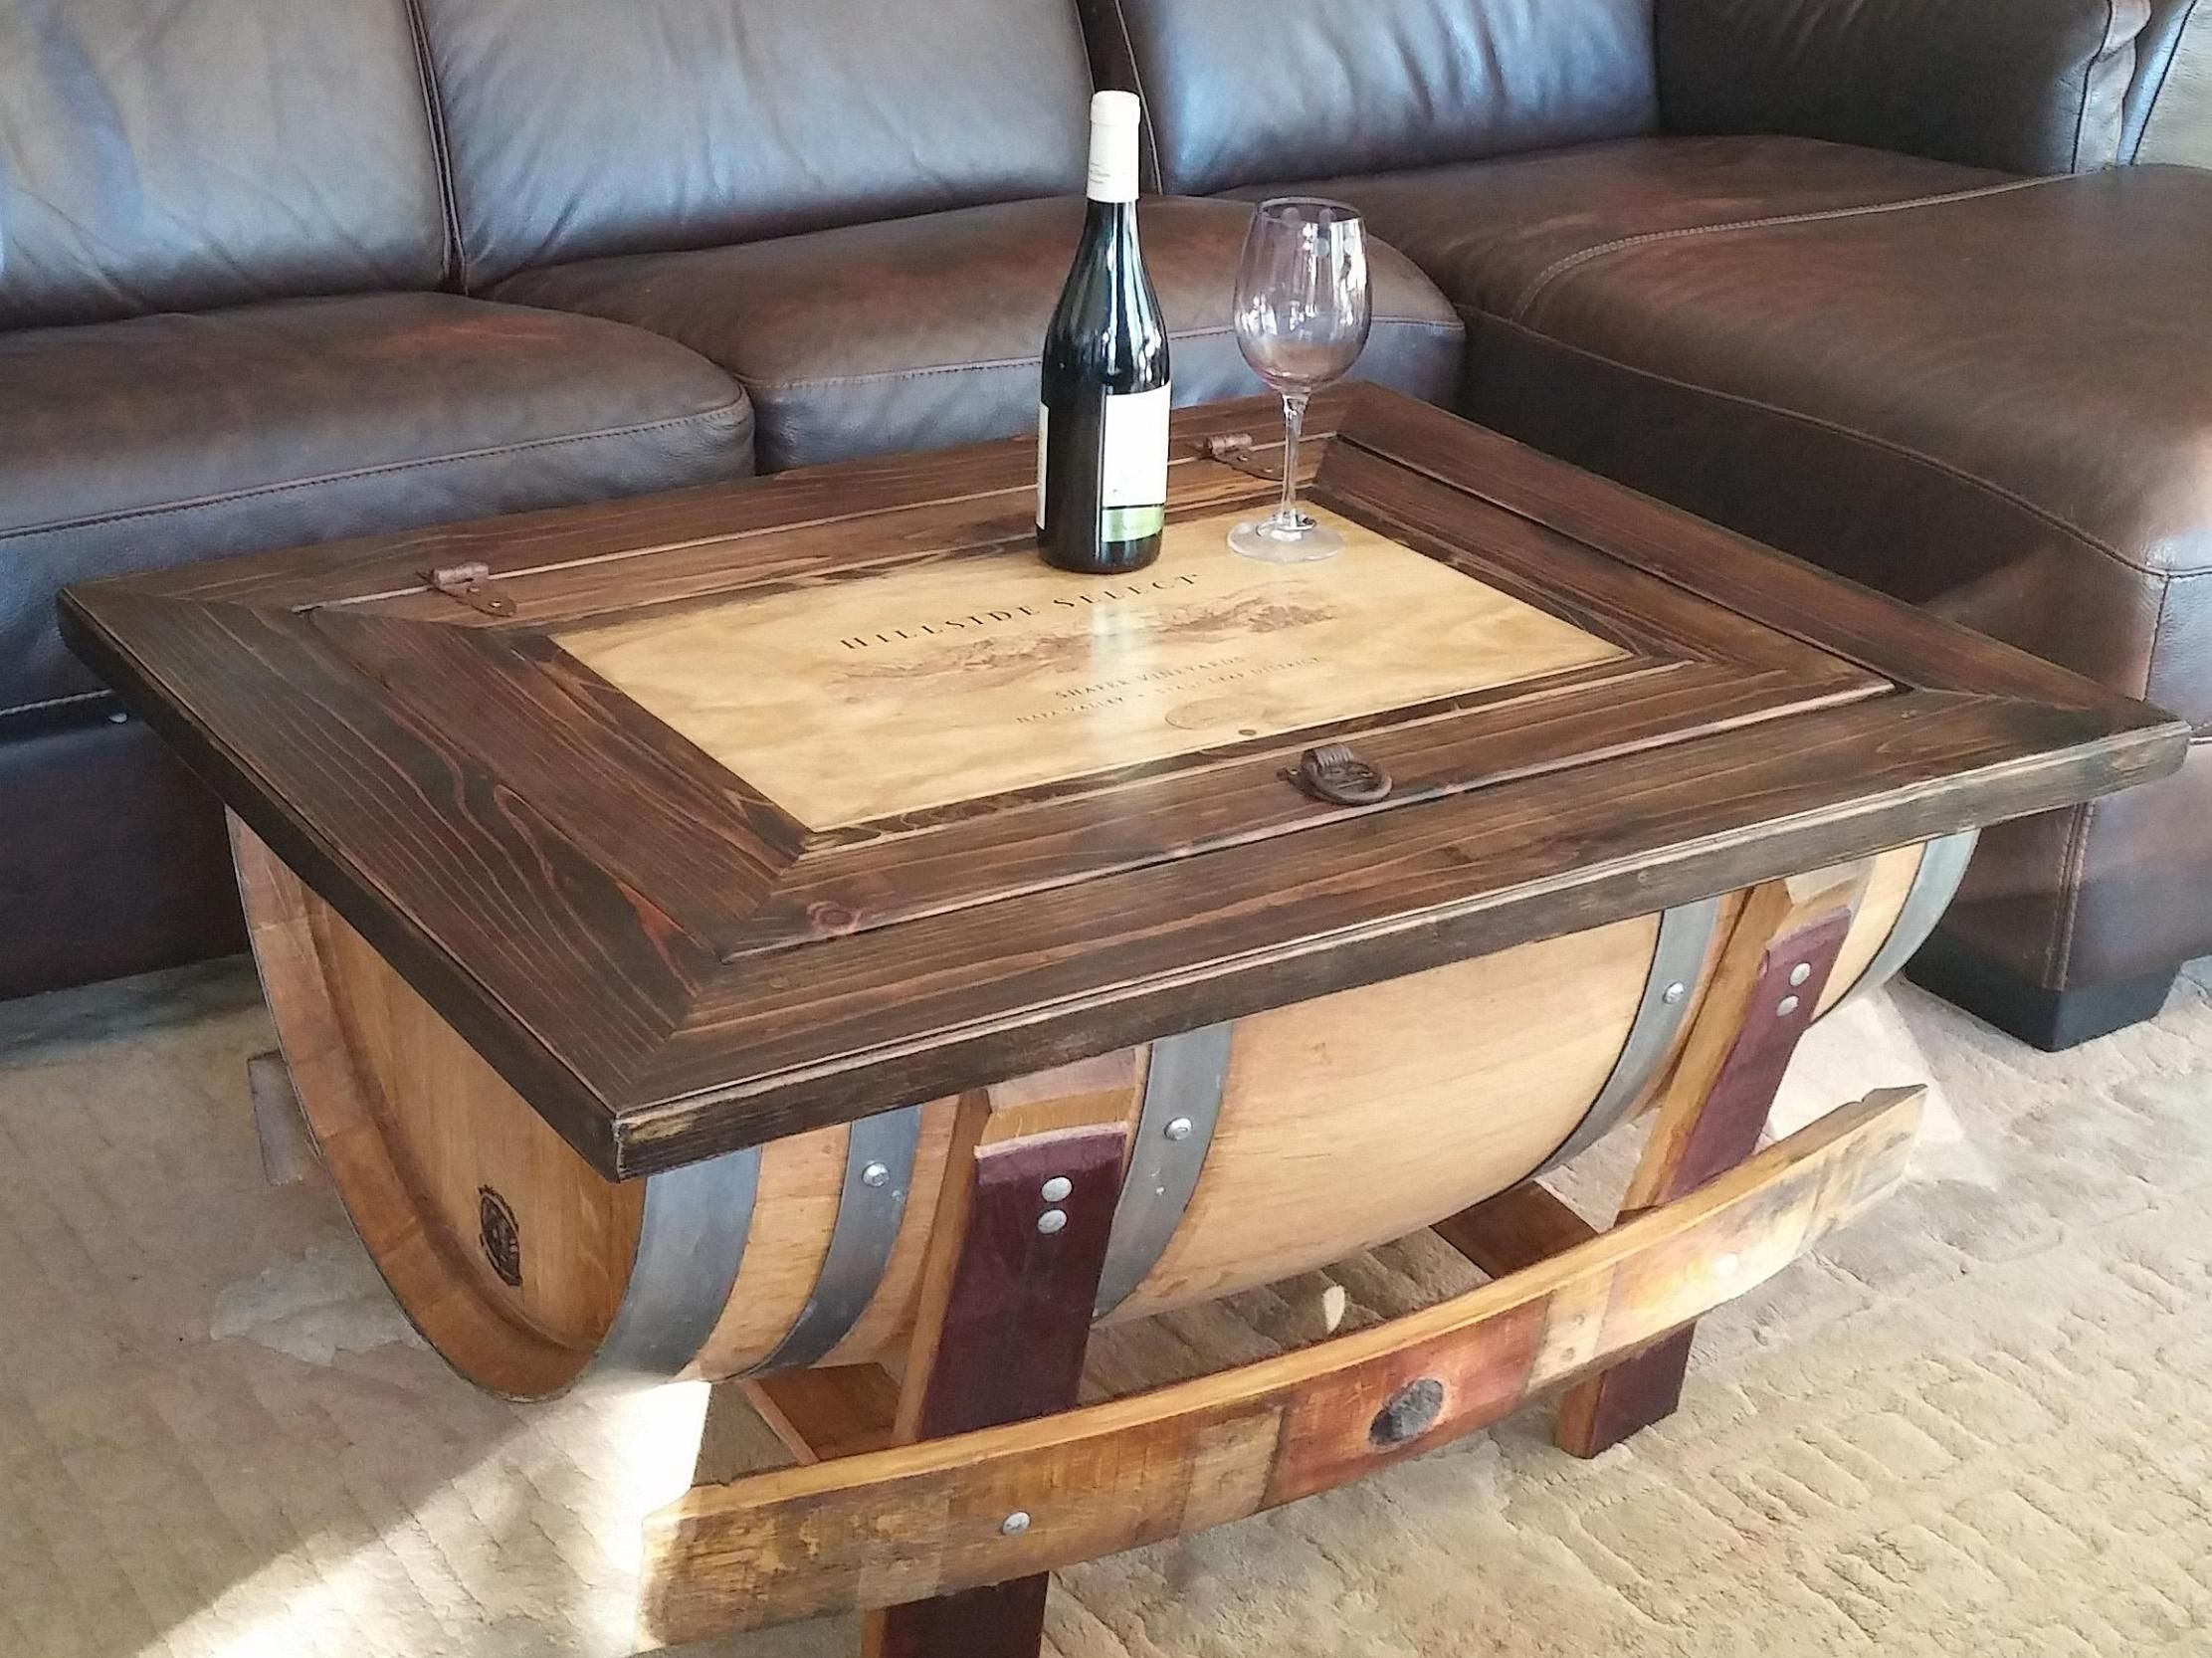 Wine Barrel Coffee Table Ideas hoome